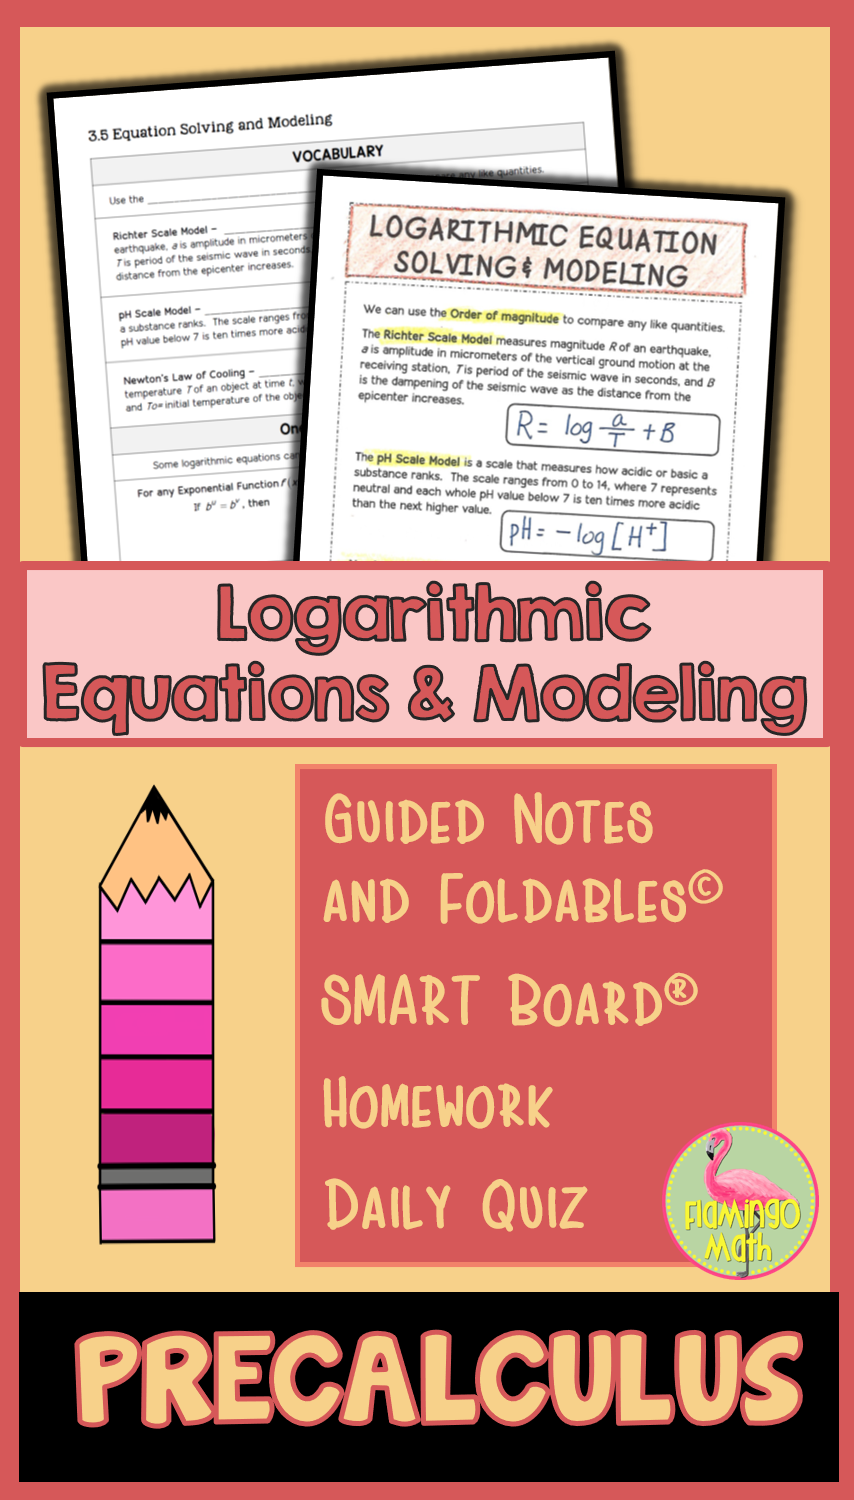 Logarithmic Equation Solving and Modeling (PreCalculus